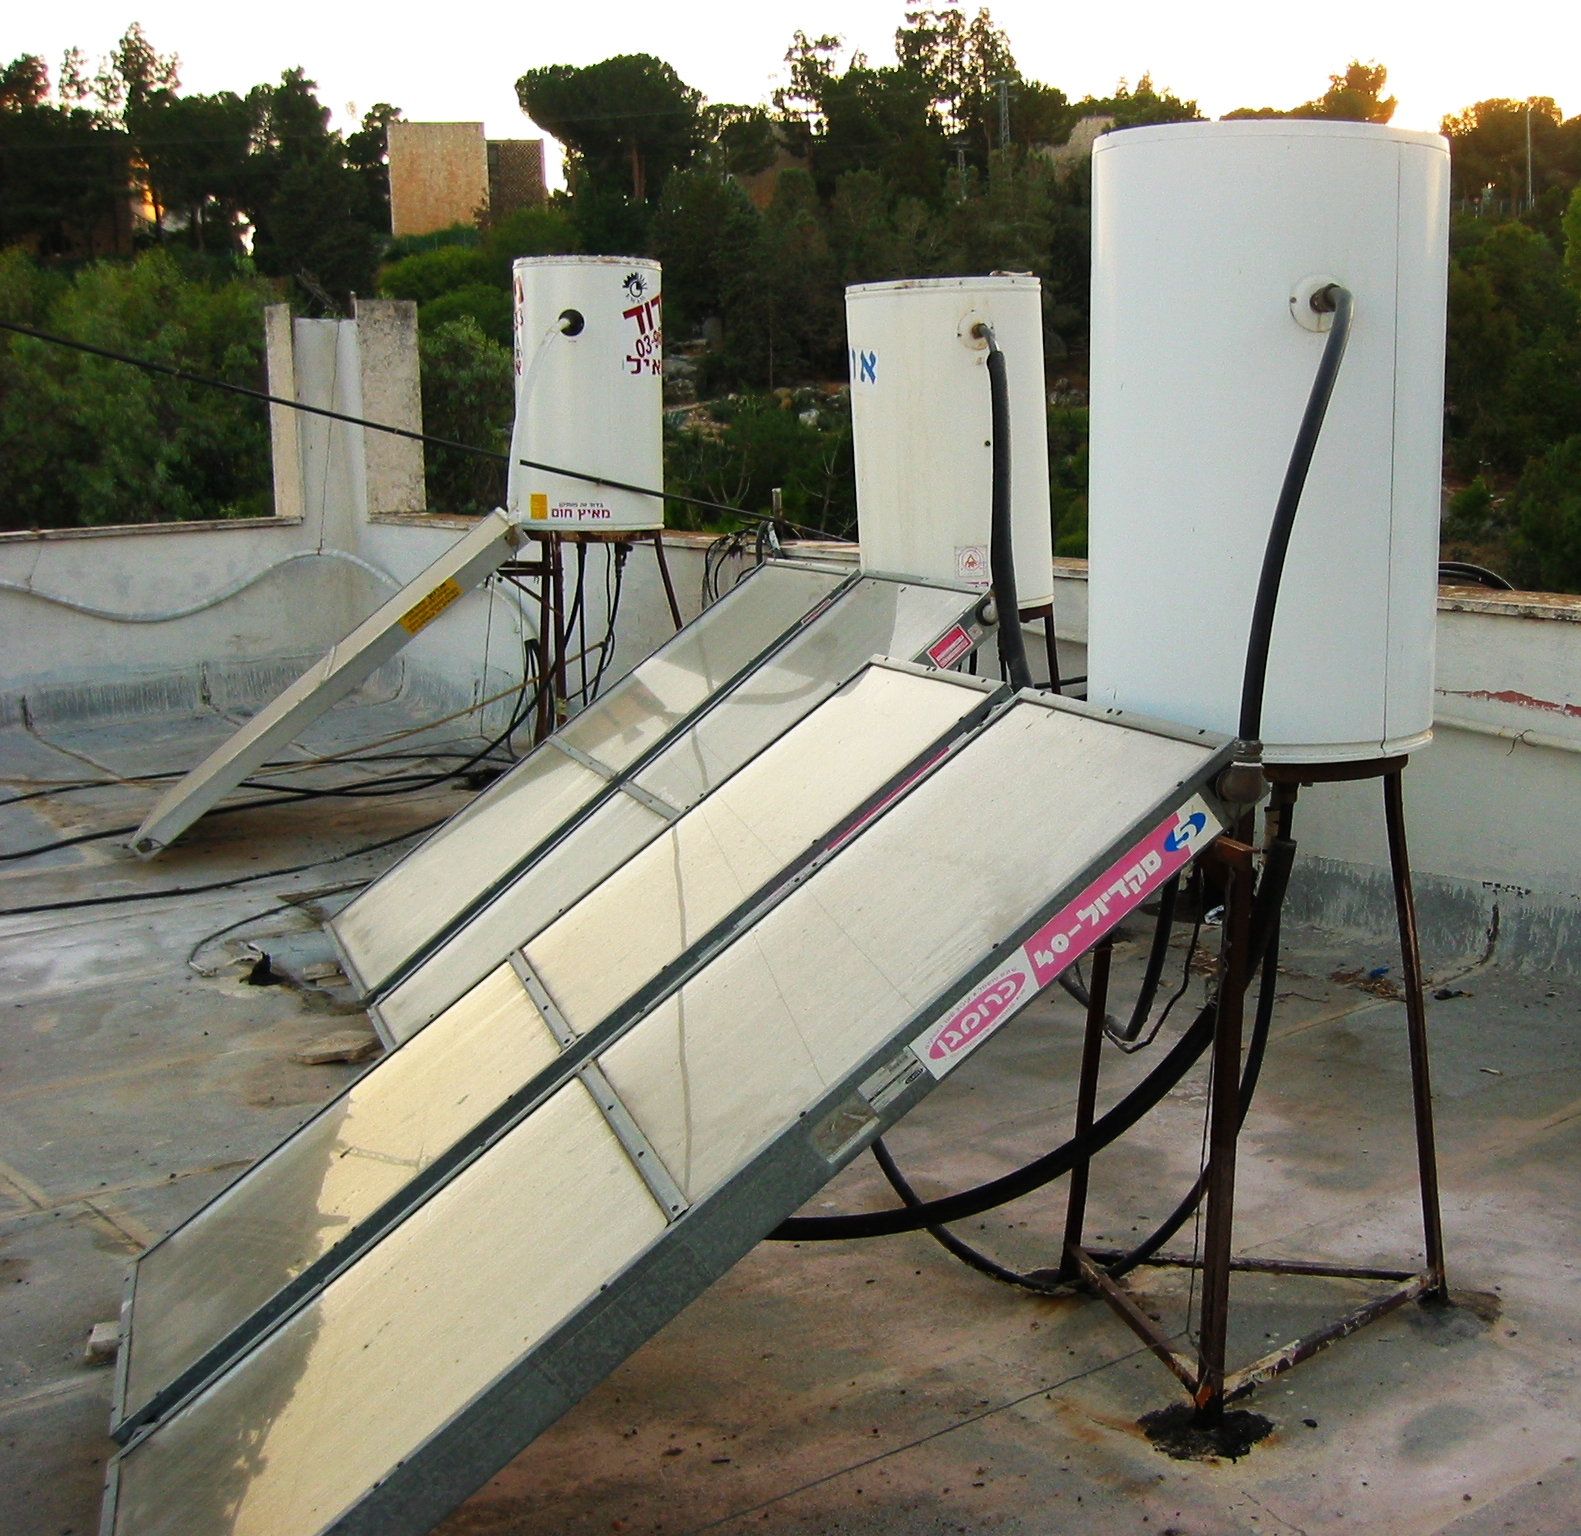 24 DIY Solar Water Heater Plans You Can Build Your Own